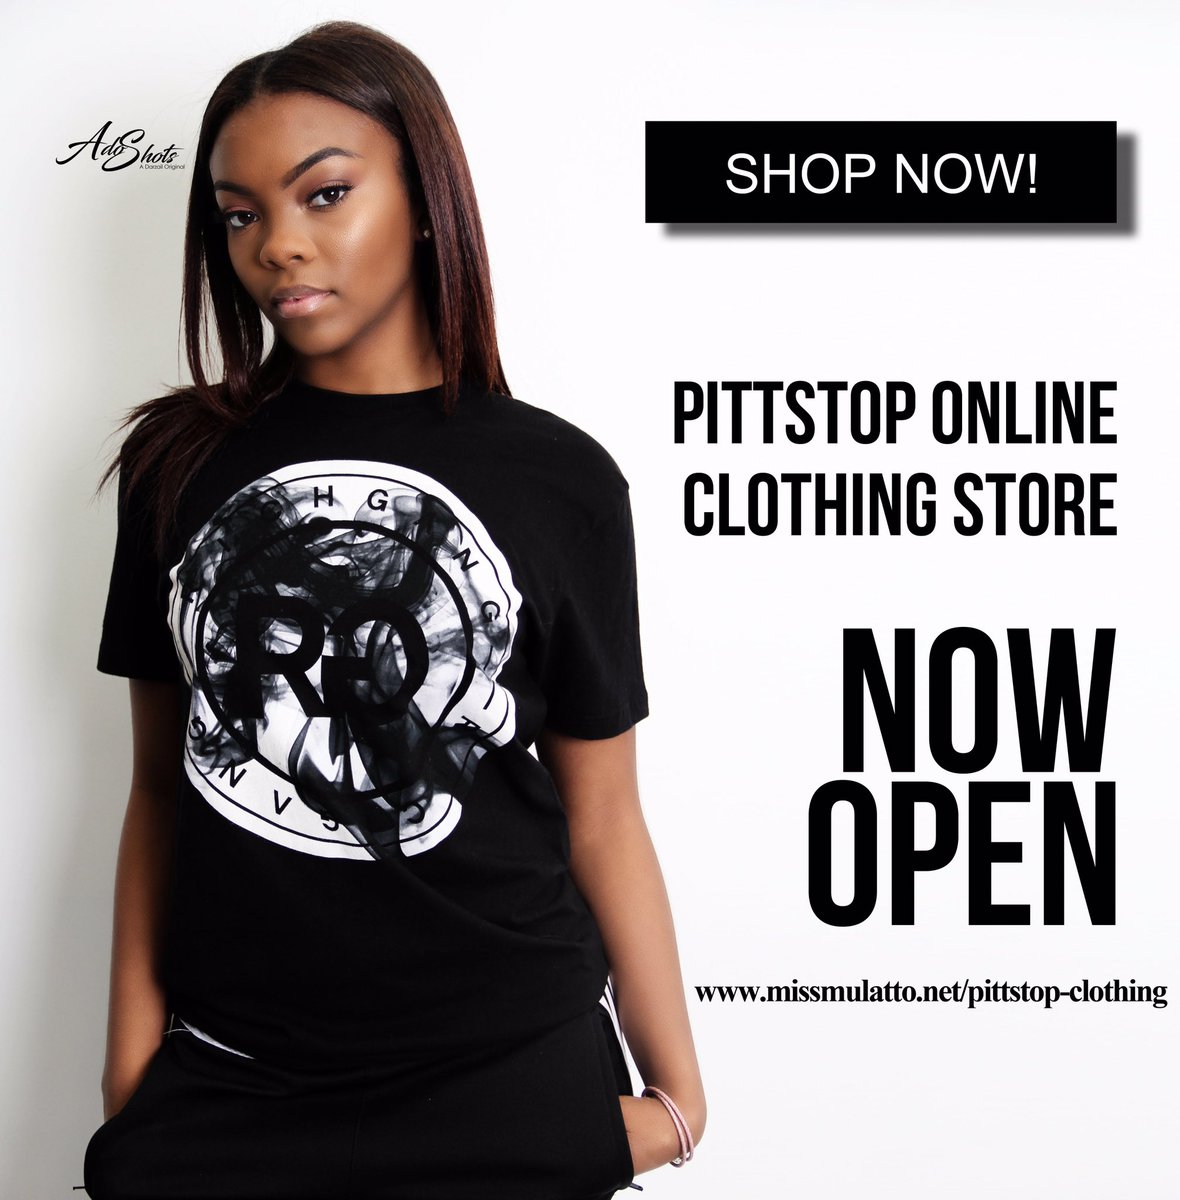 Pittstop clothing store miss mulatto